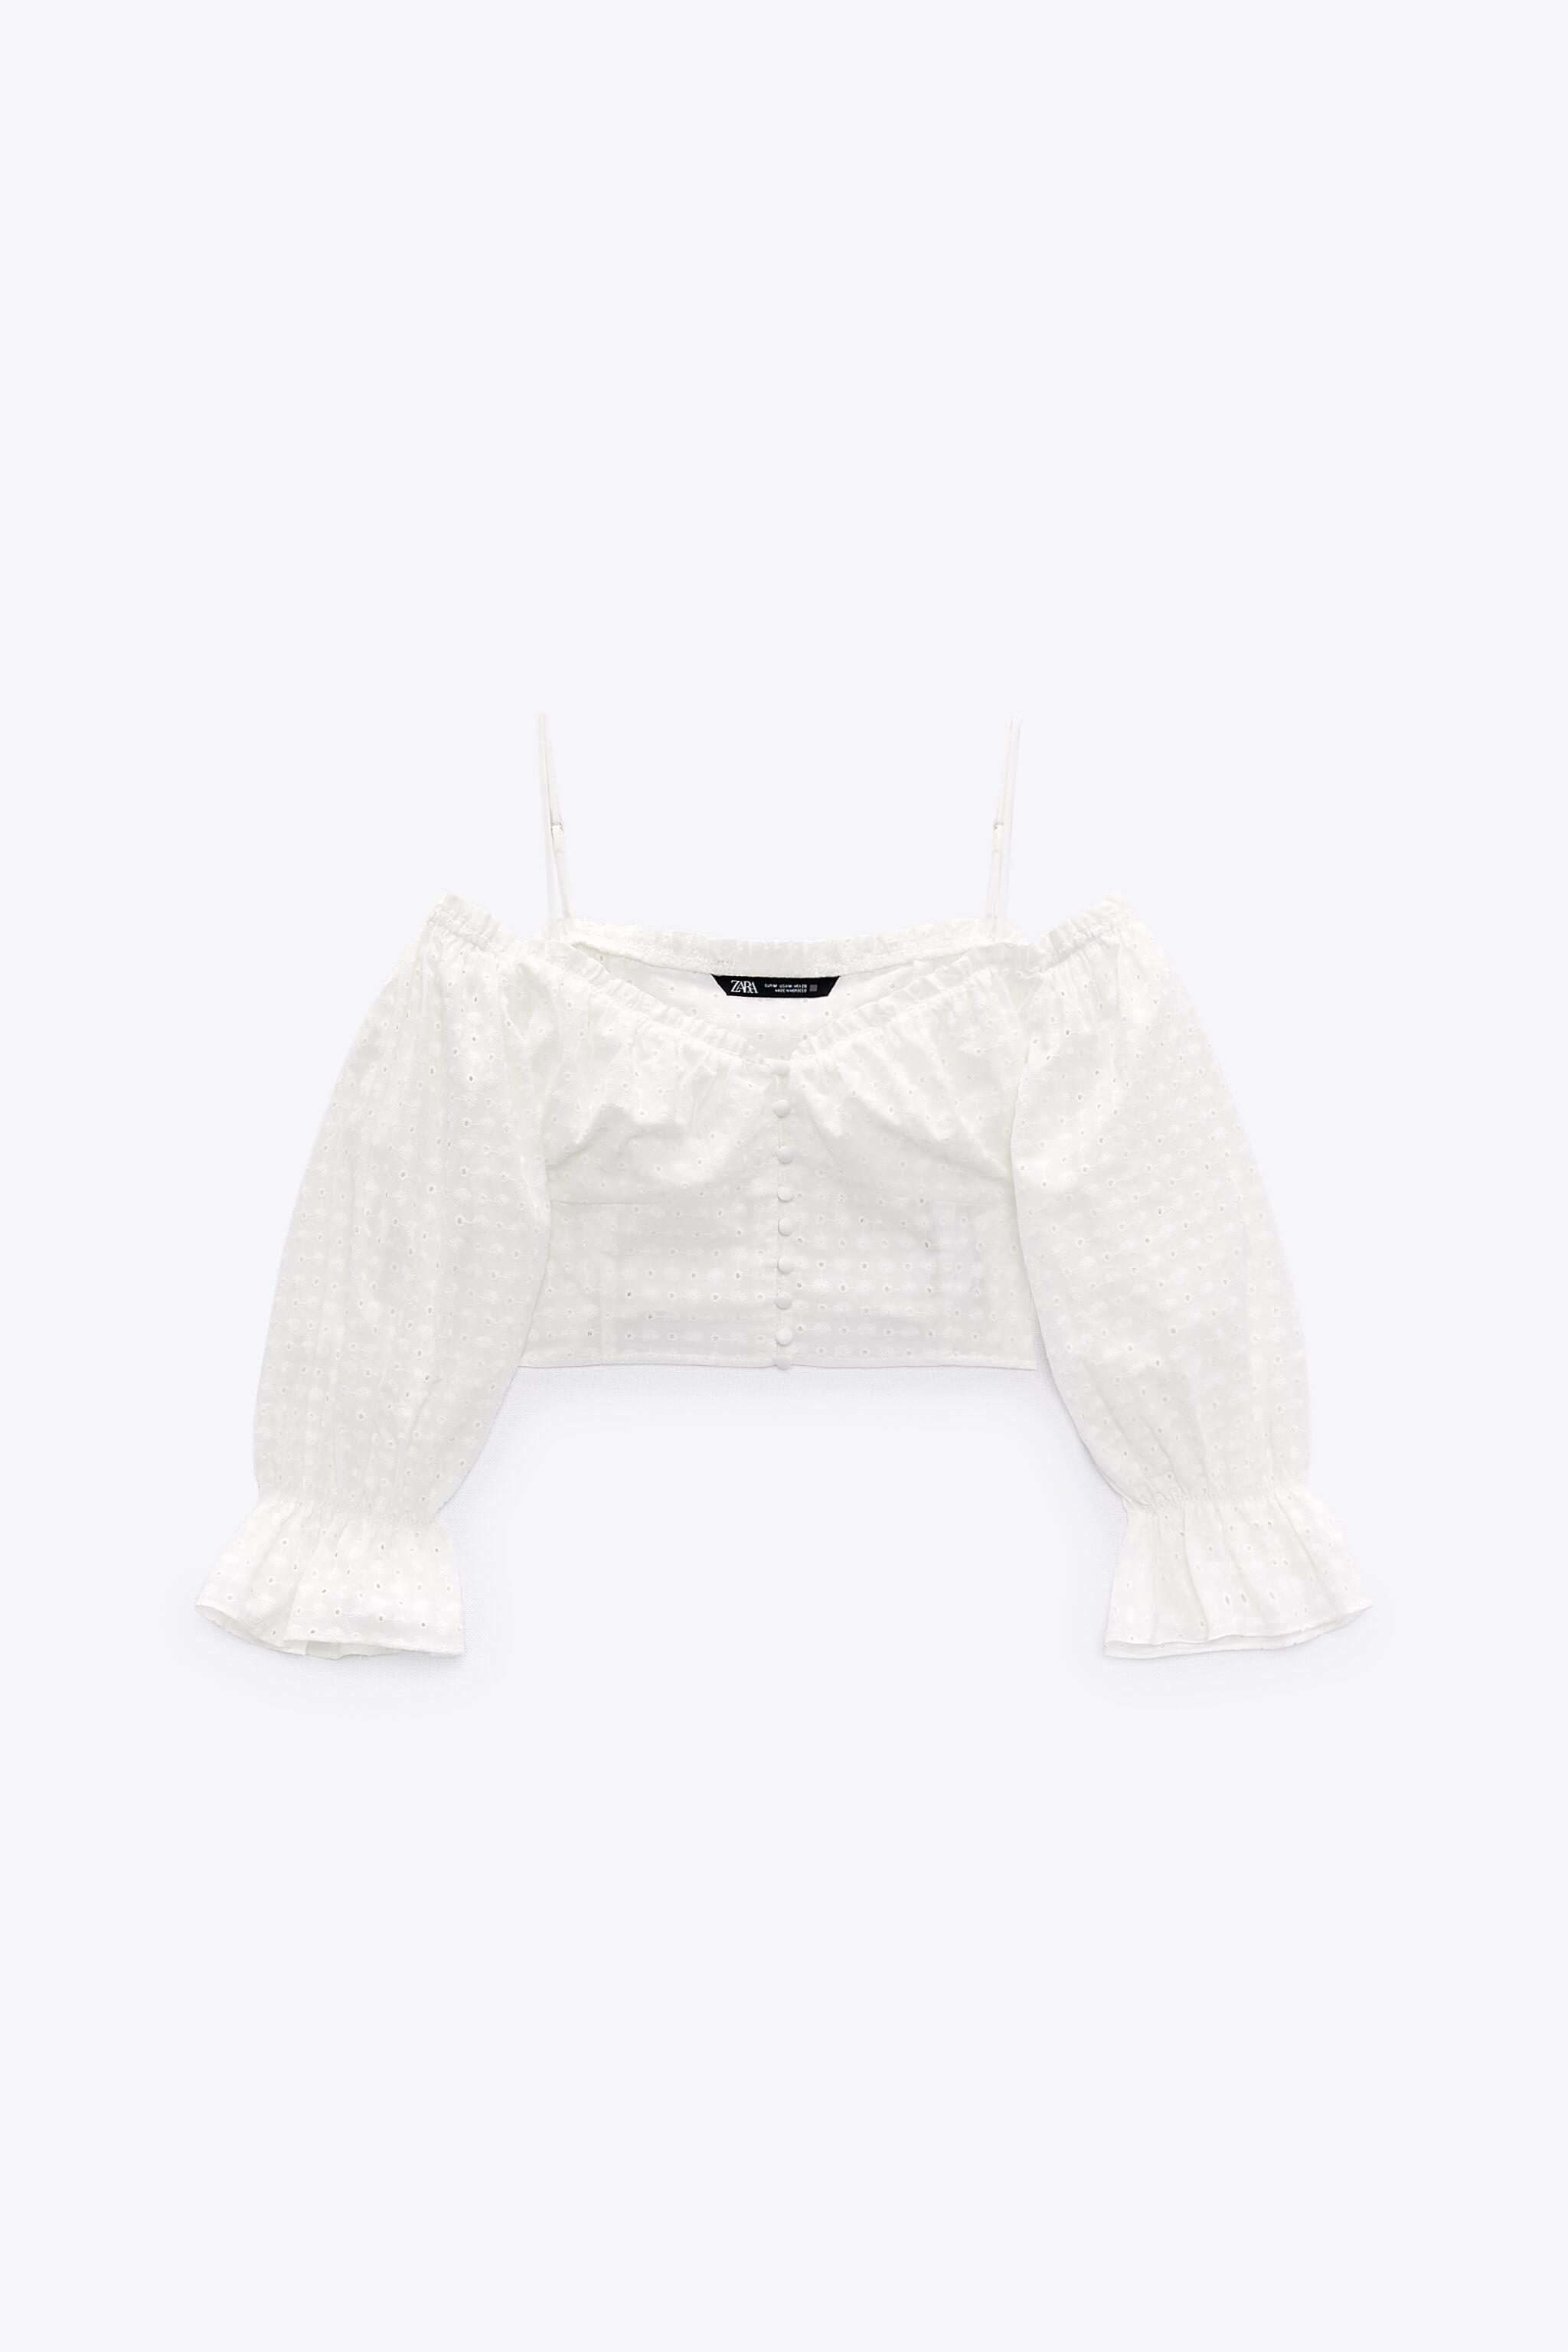 EMBROIDERED EYELET CROP TOP 7